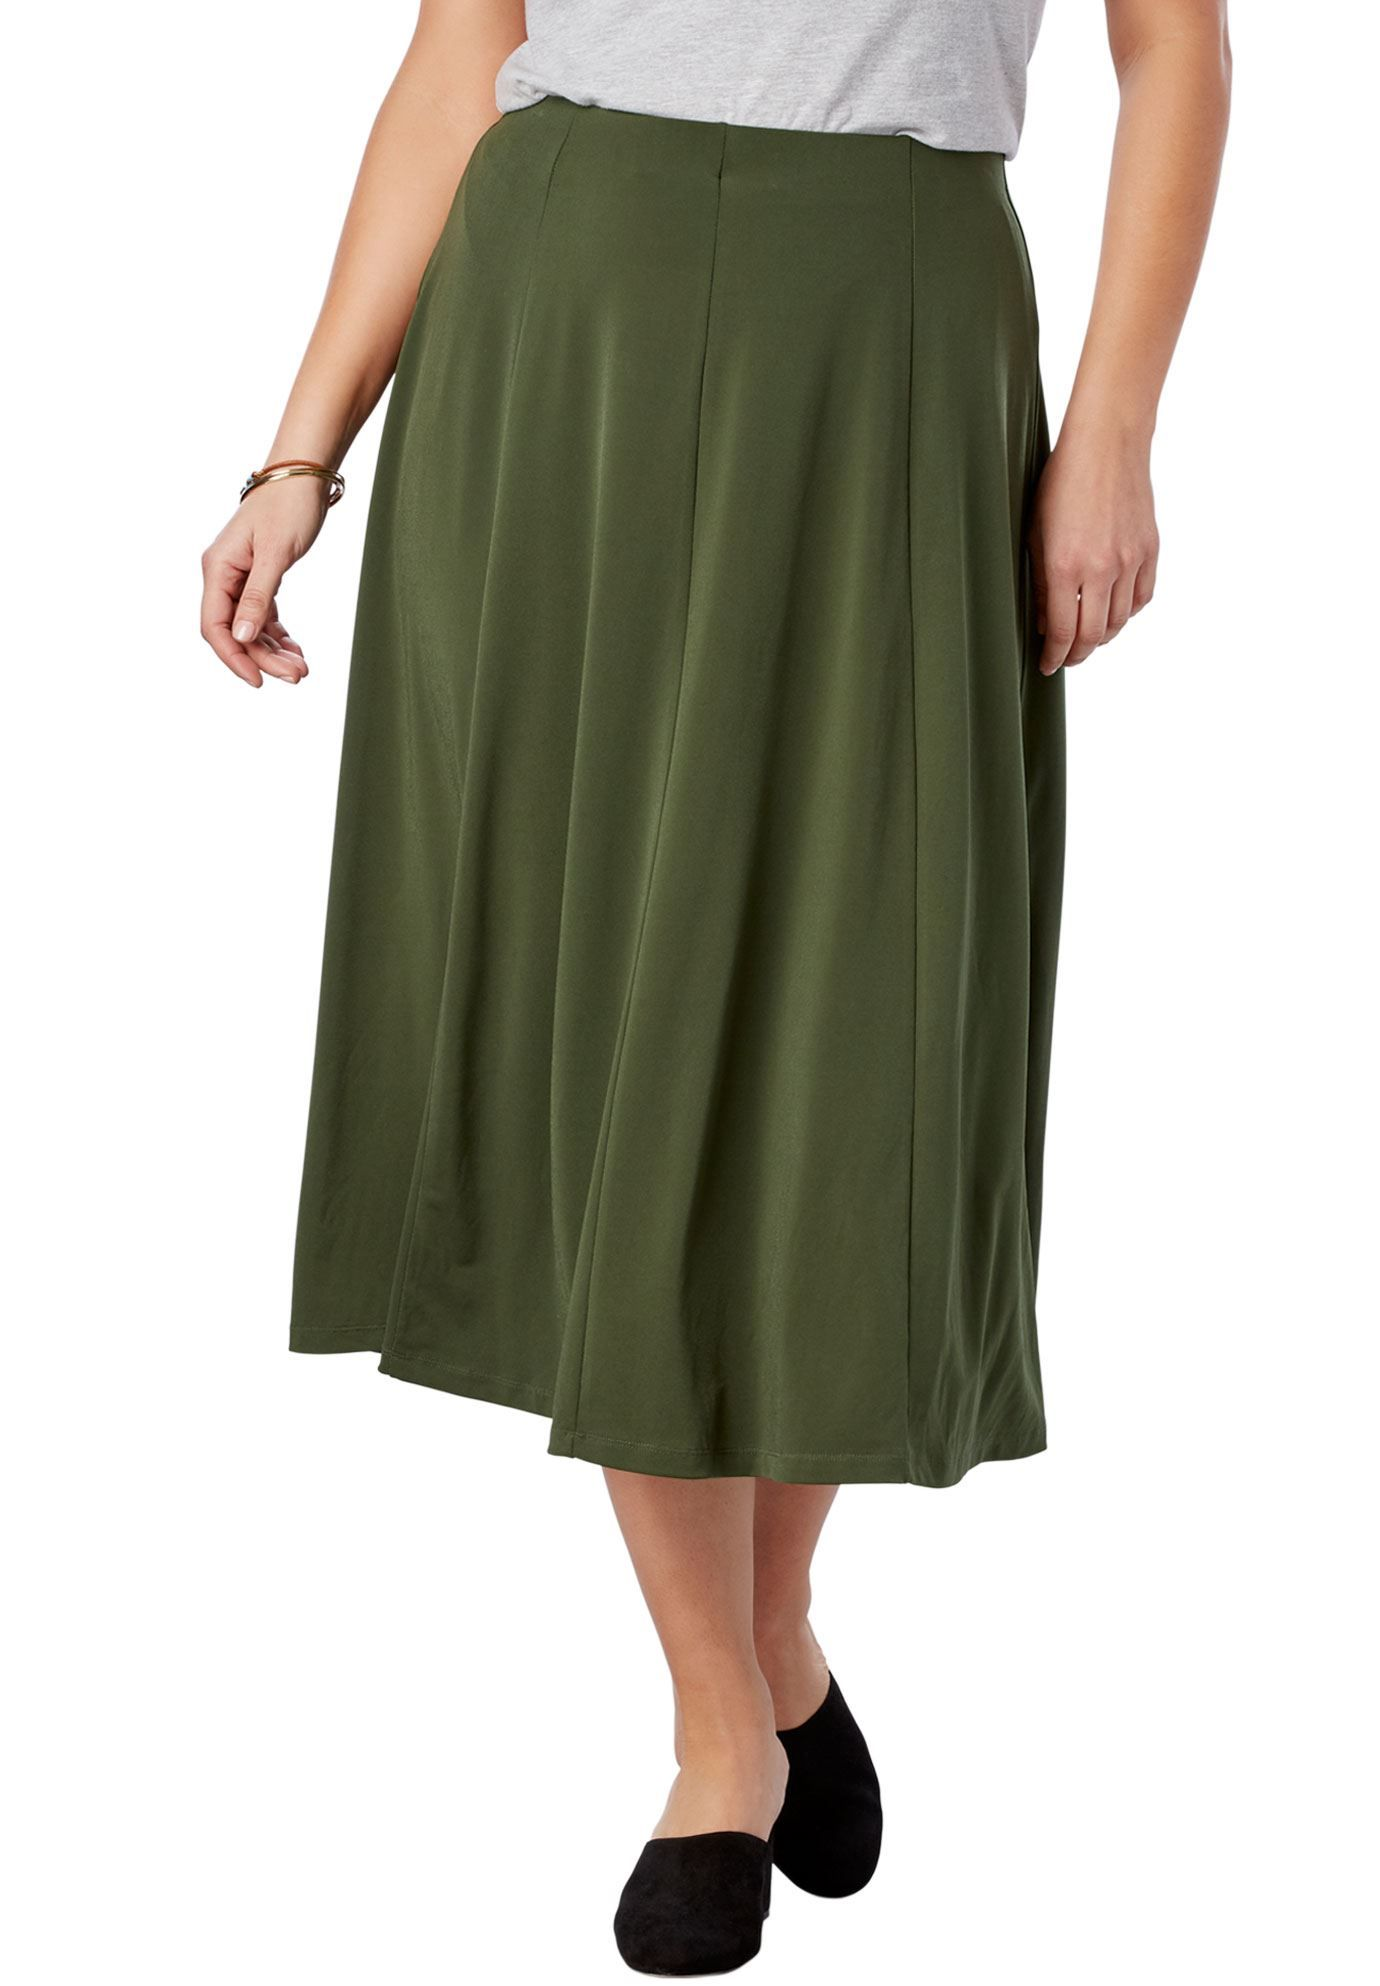 c2c8fac17 A-Line Knit Midi Skirt - Women's Plus Size Clothing | Products ...